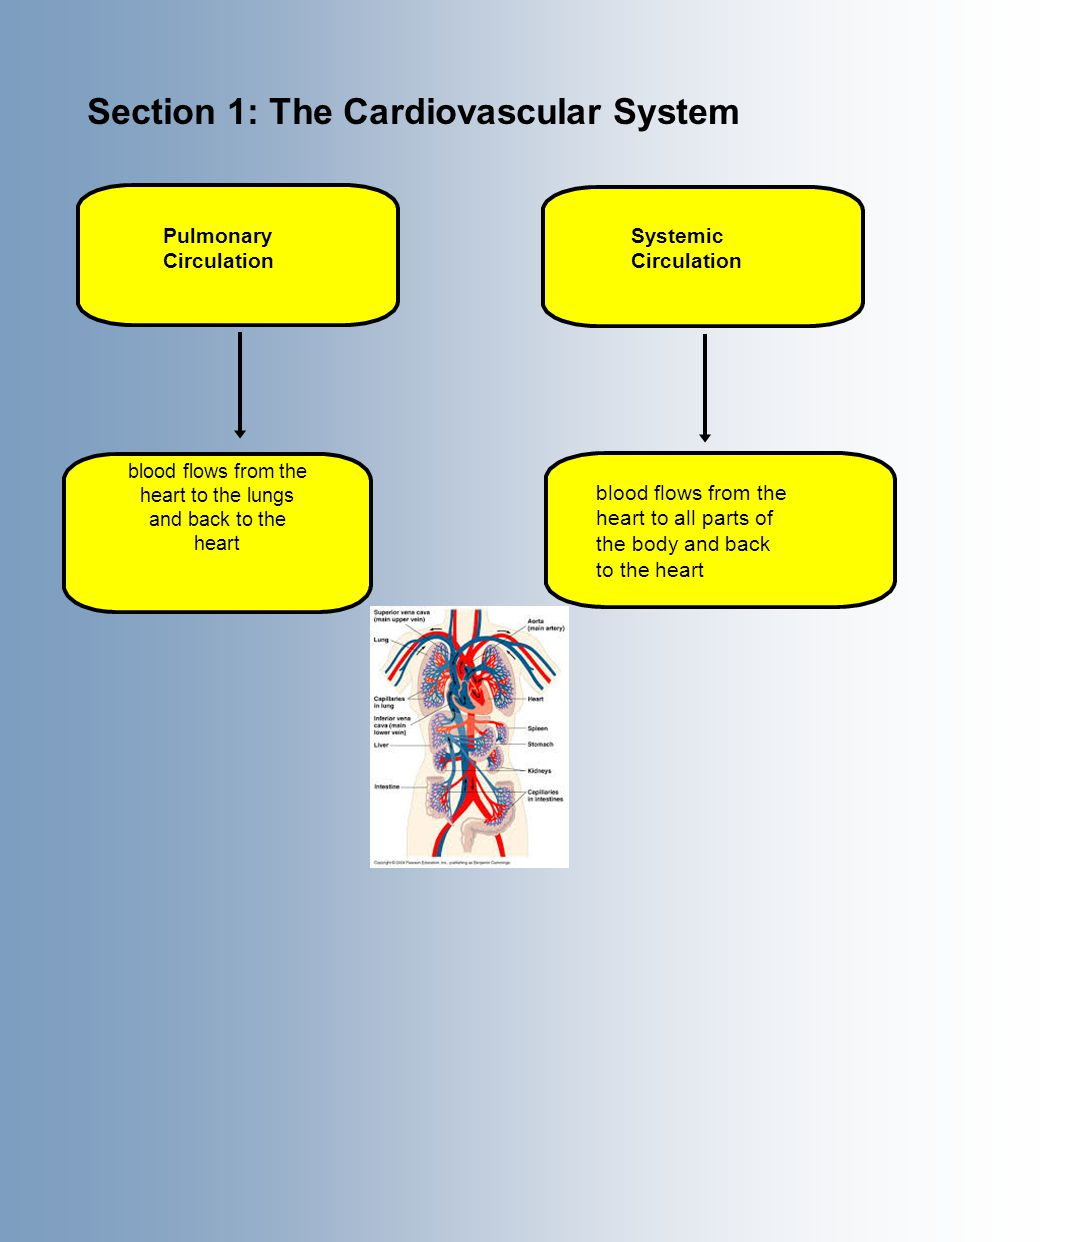 Section 1: The Cardiovascular System